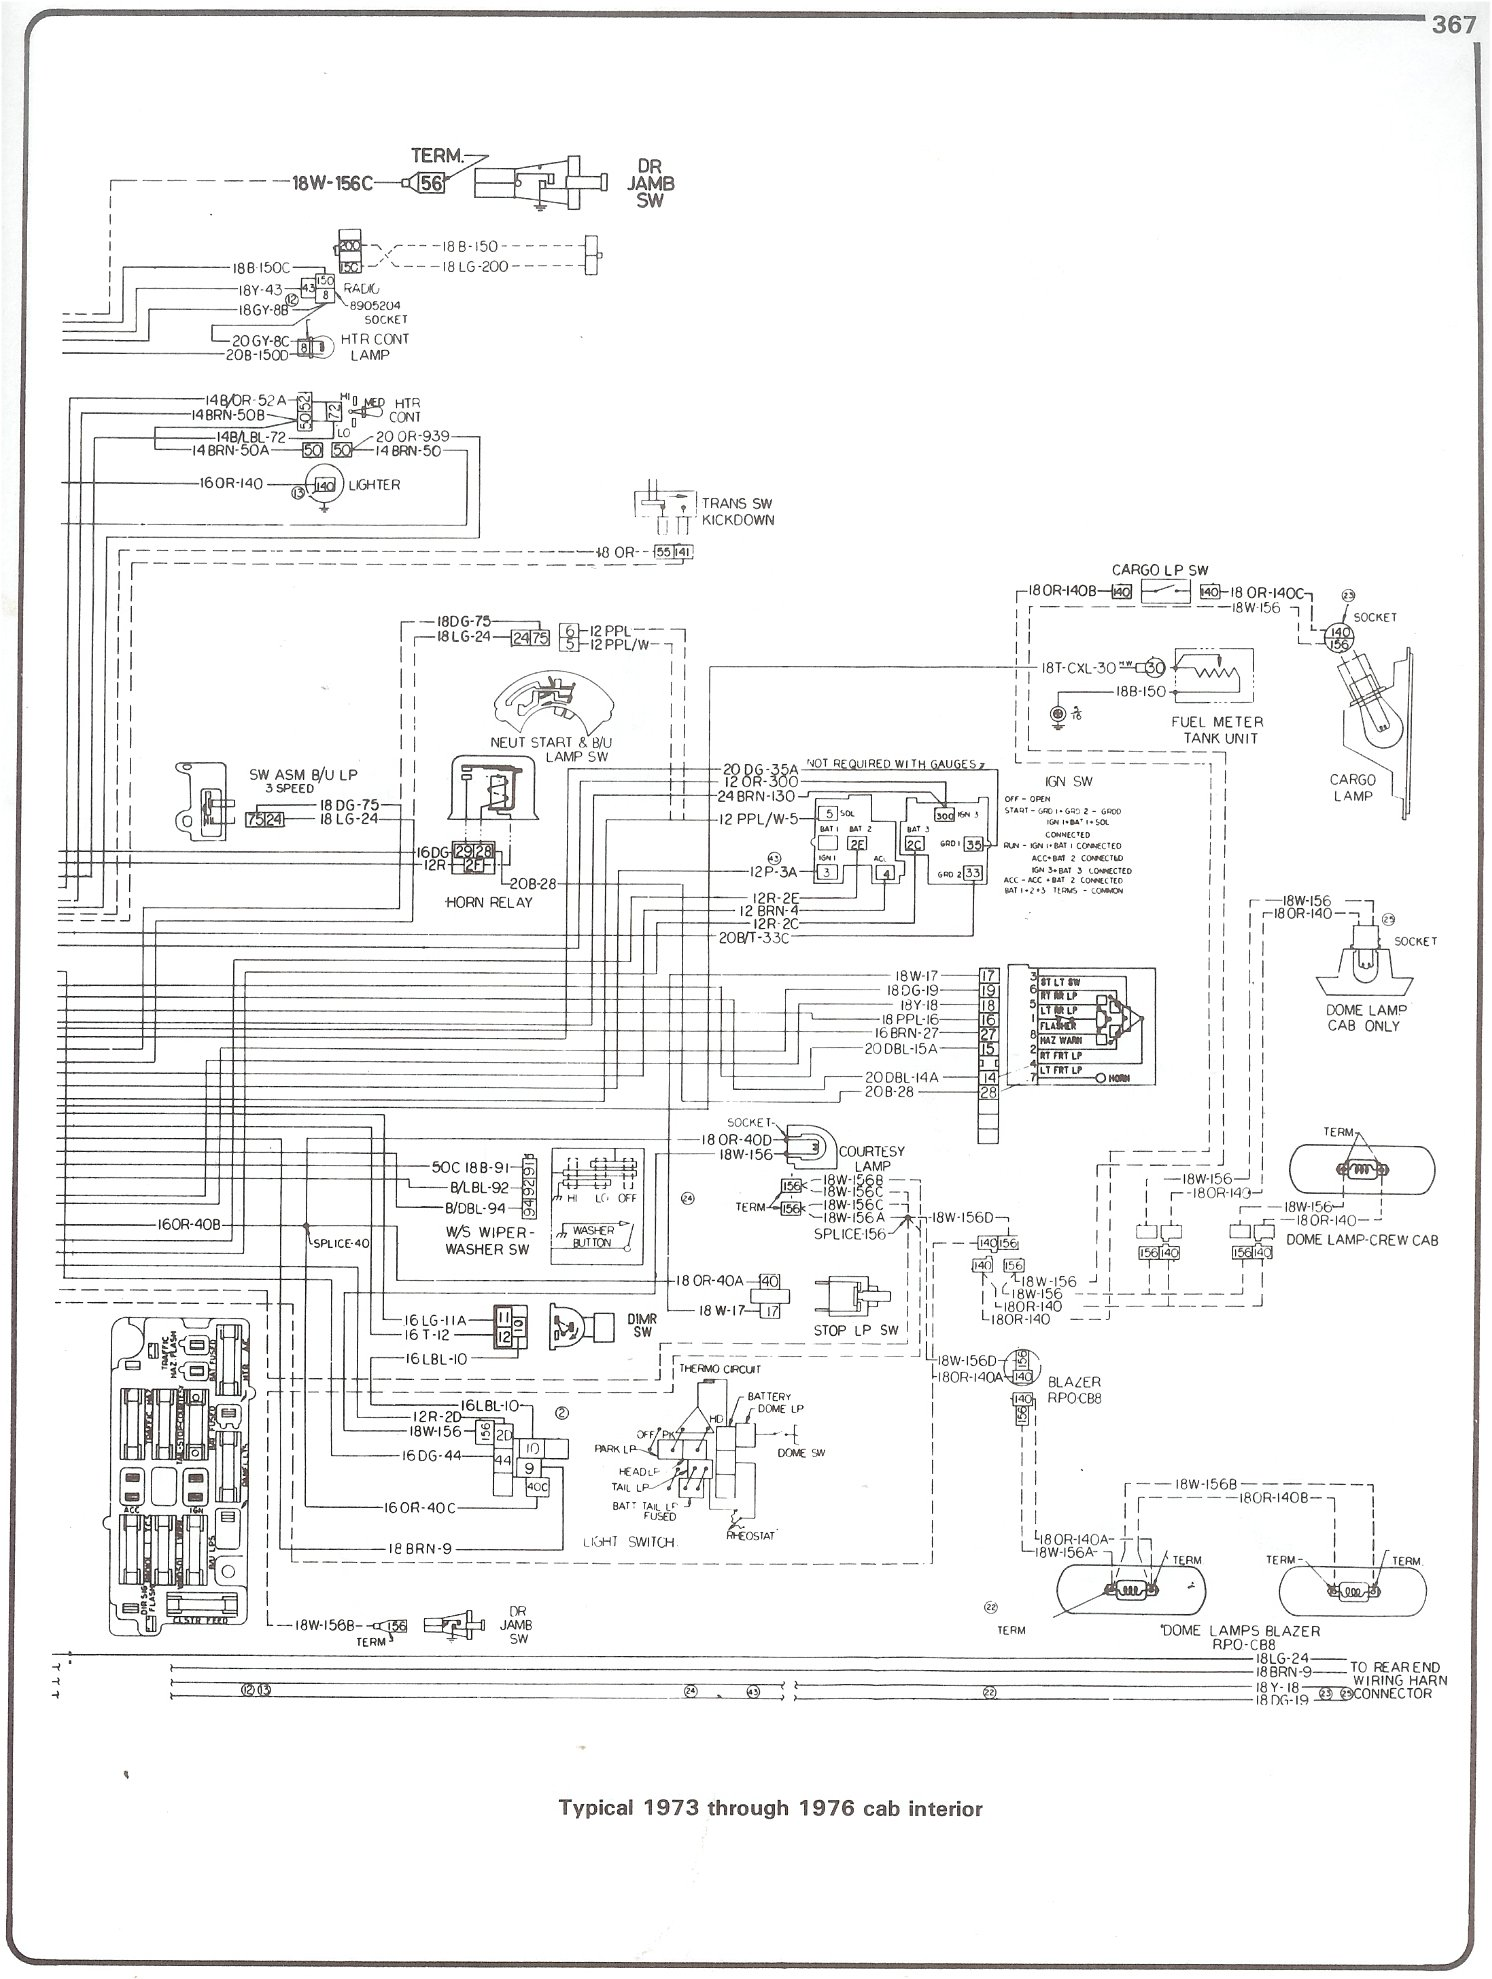 1979 chevy pickup wiring diagram -internet nid wiring diagram | begeboy wiring  diagram source  begeboy wiring diagram source